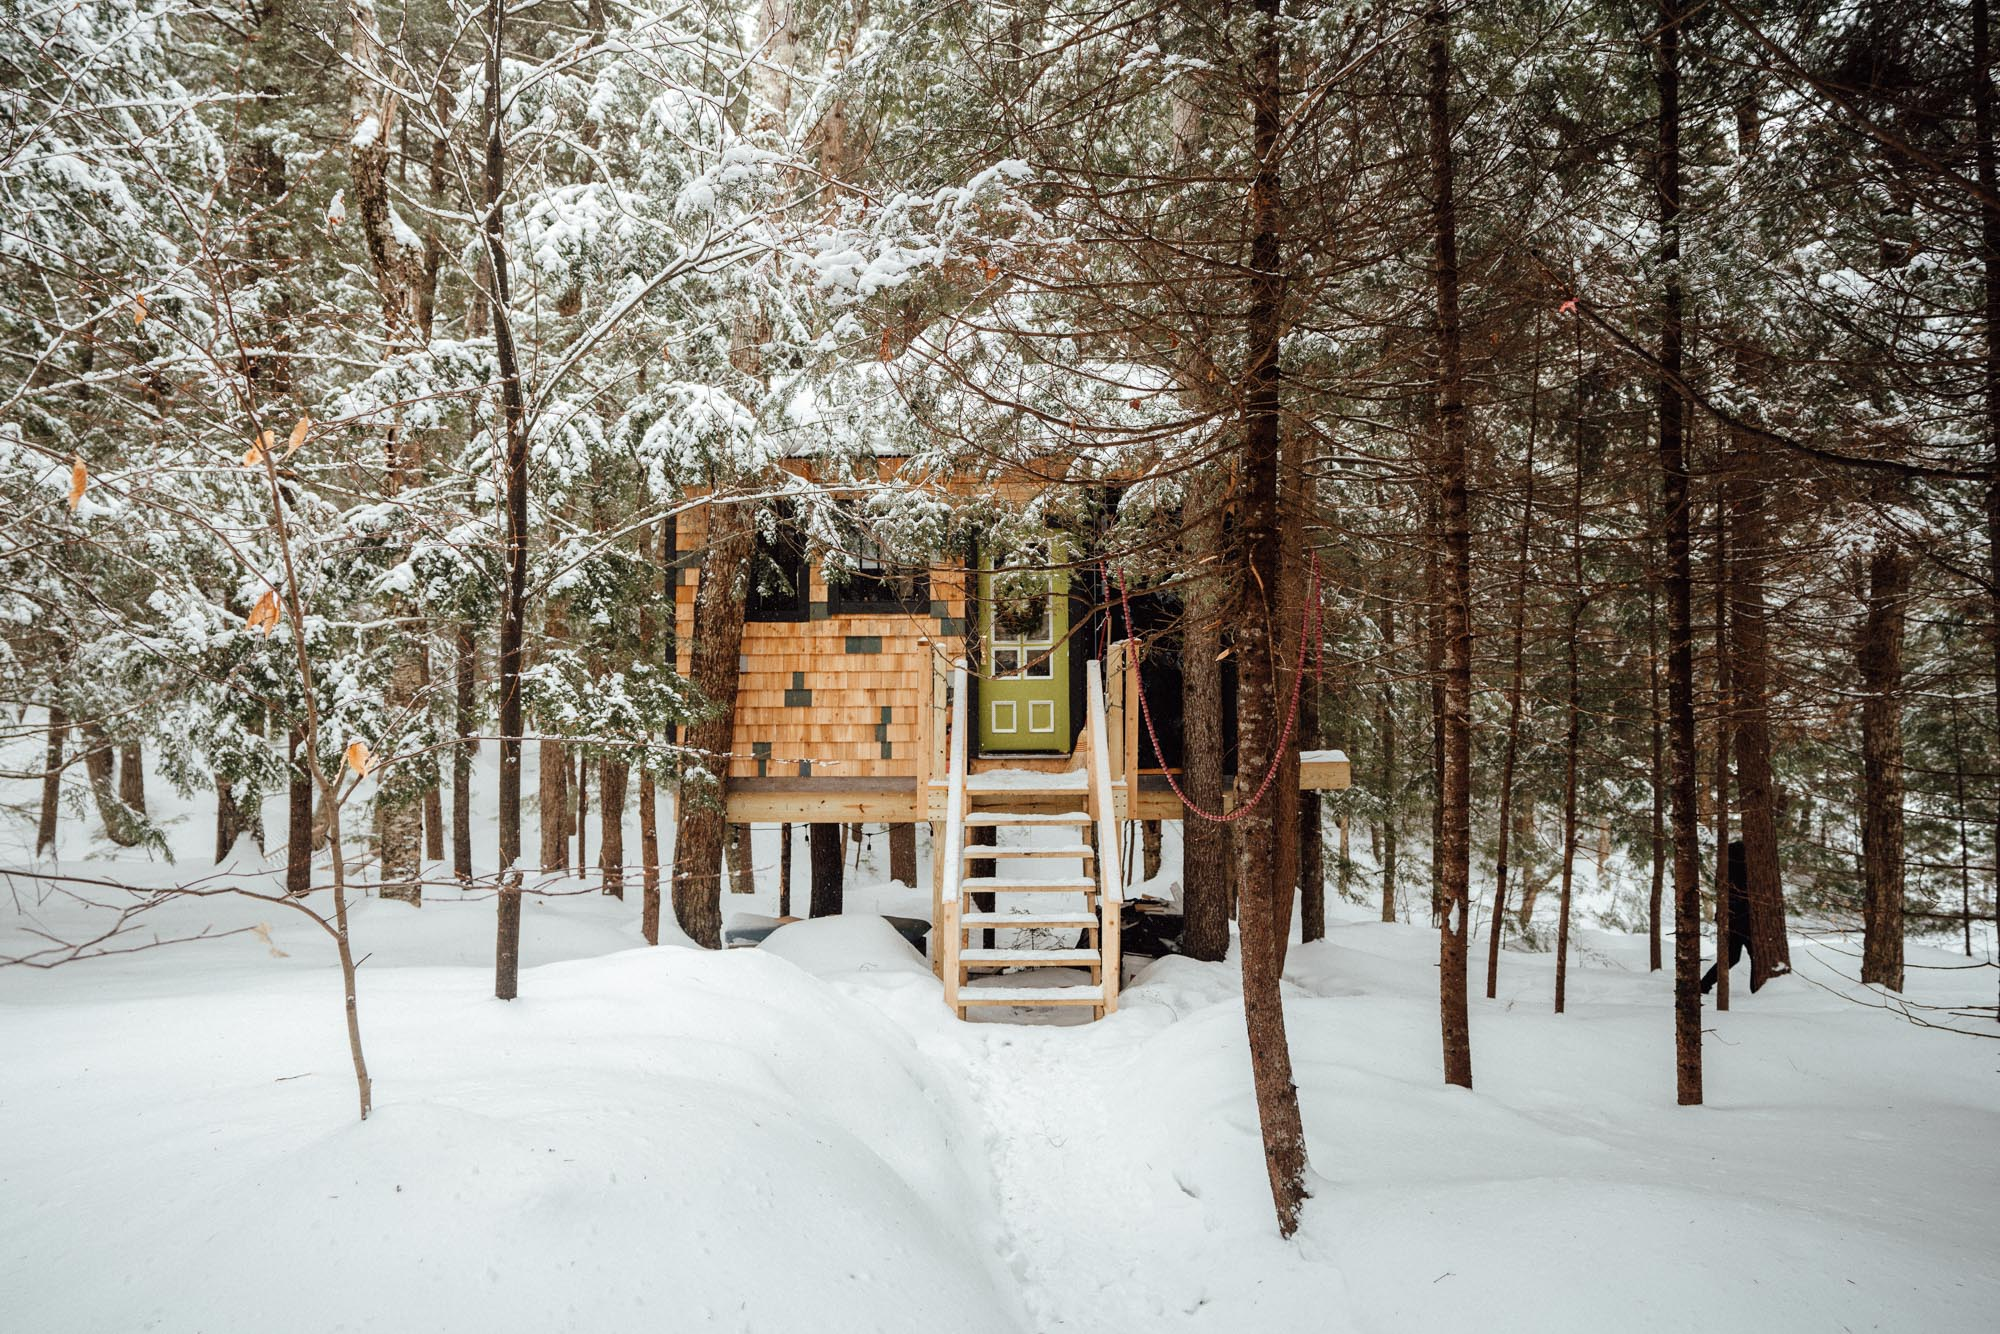 Vermont Treehouse Airbnb From New York City via @finduslost